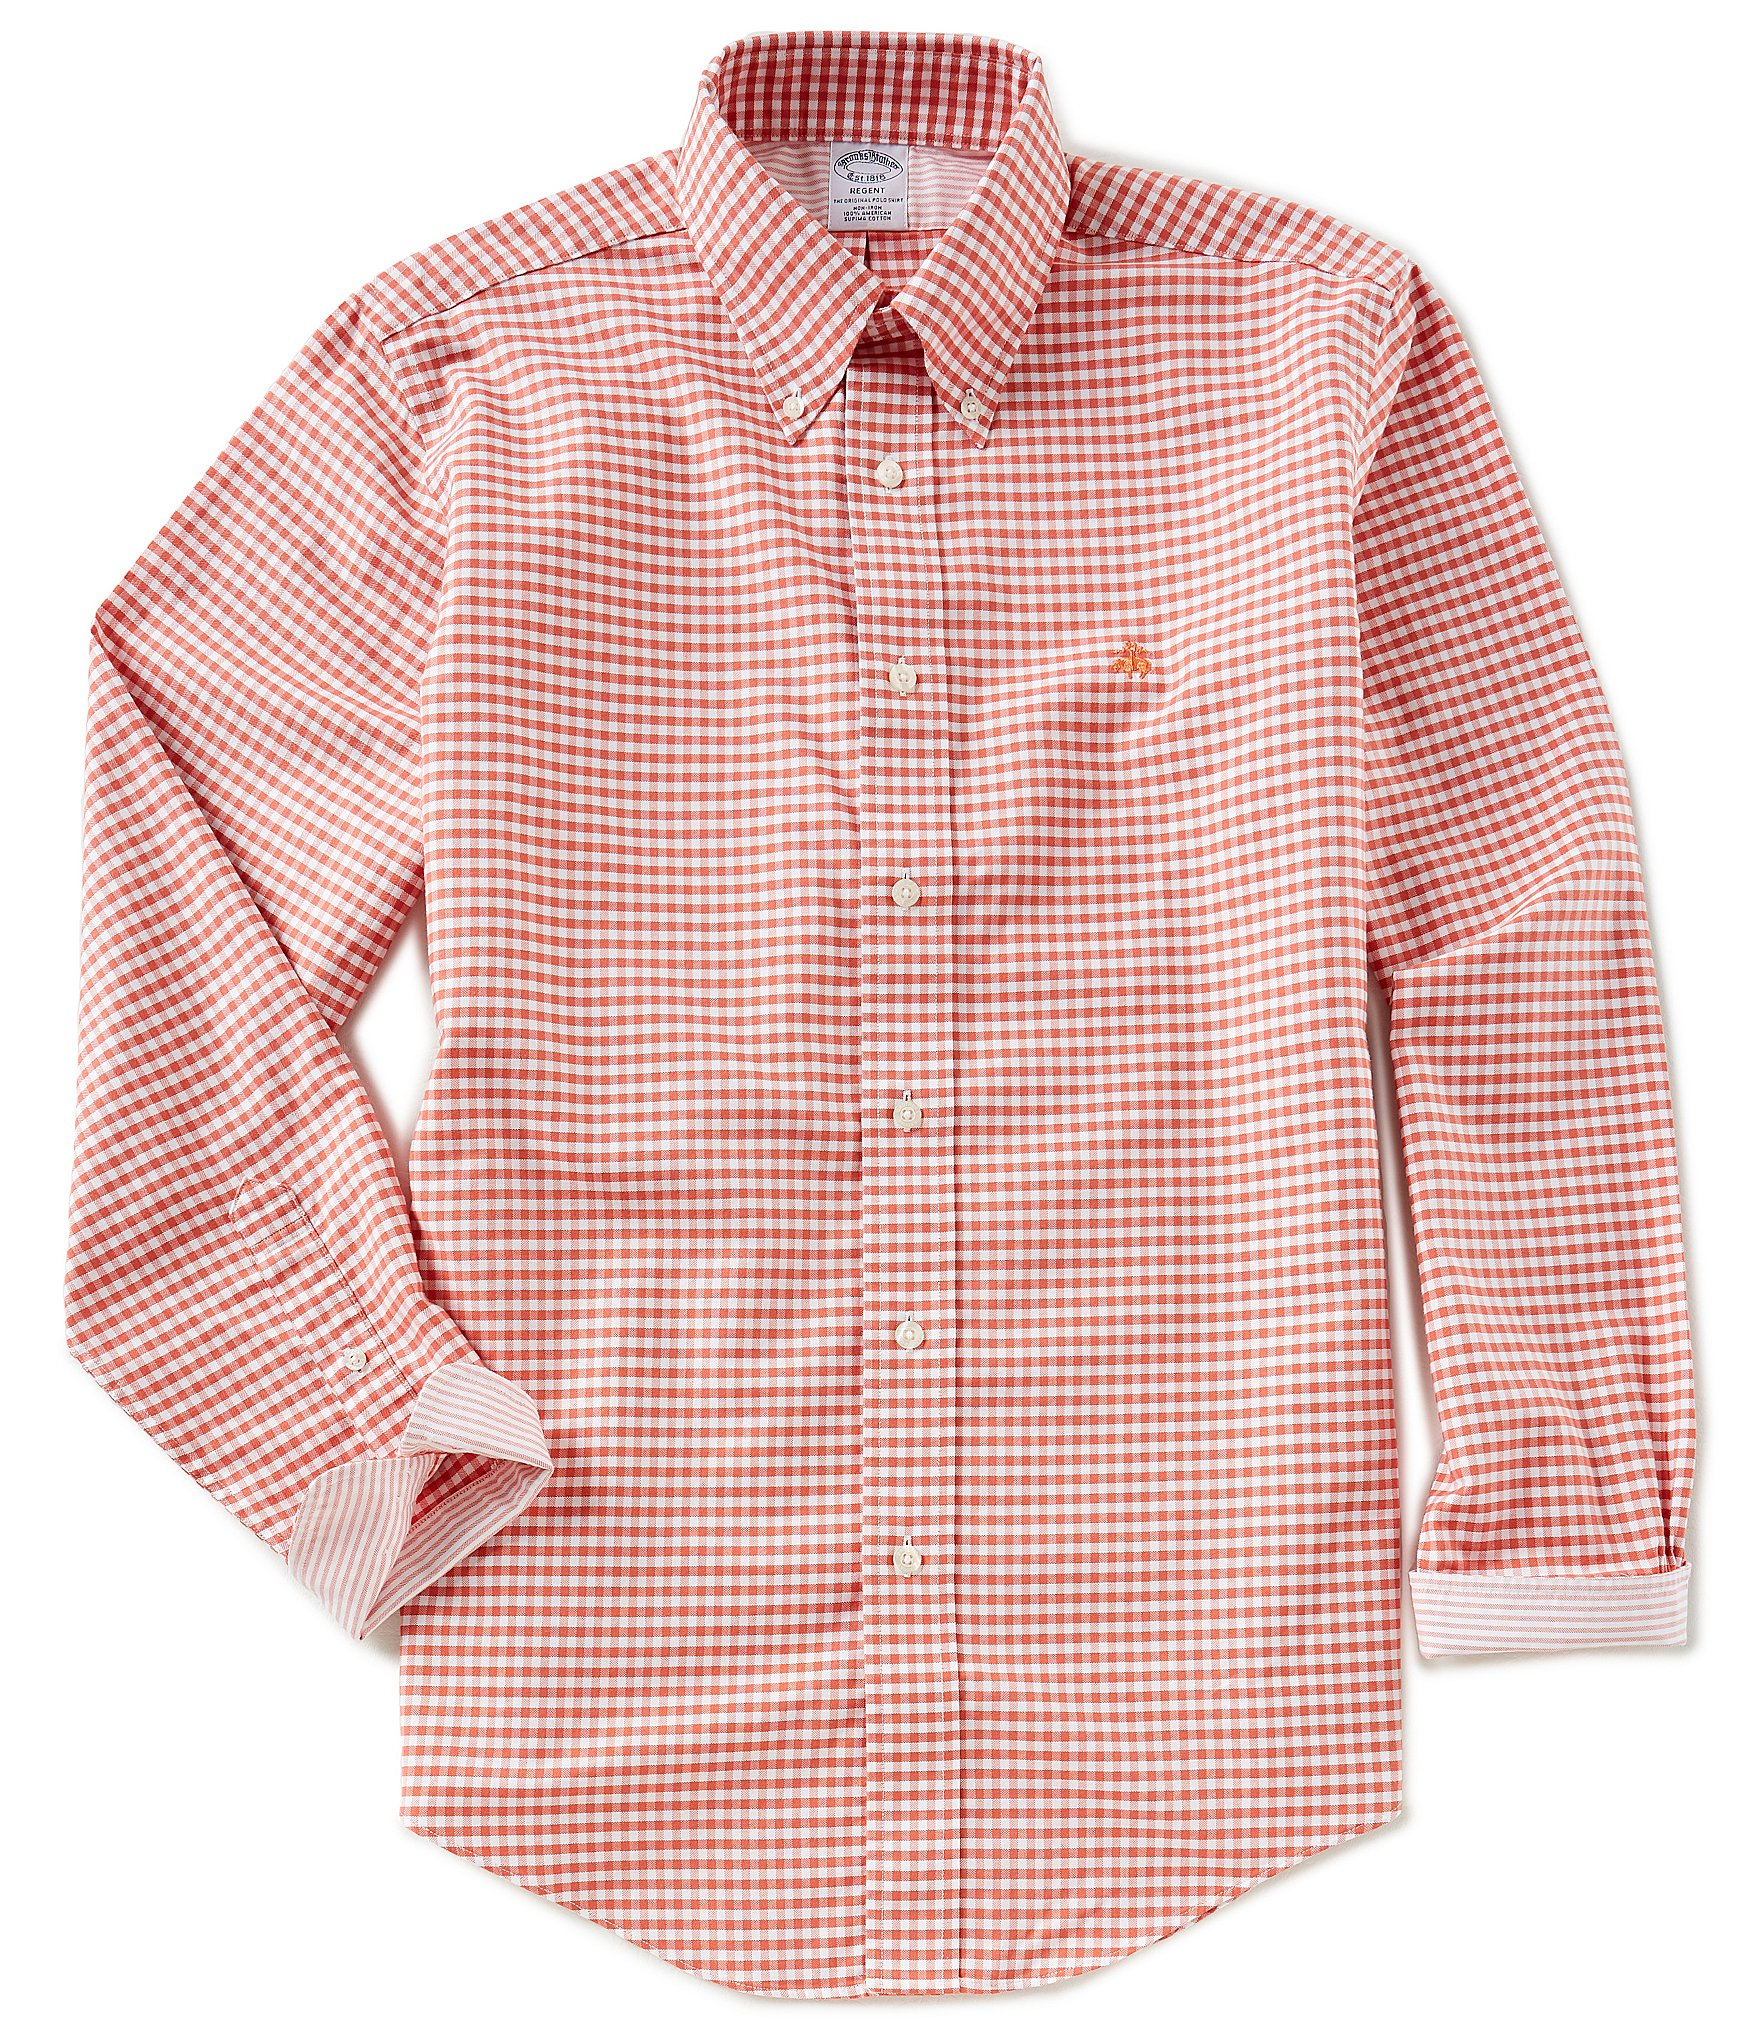 Brooks brothers non iron regent fit gingham oxford long for Brooks brothers non iron shirt review